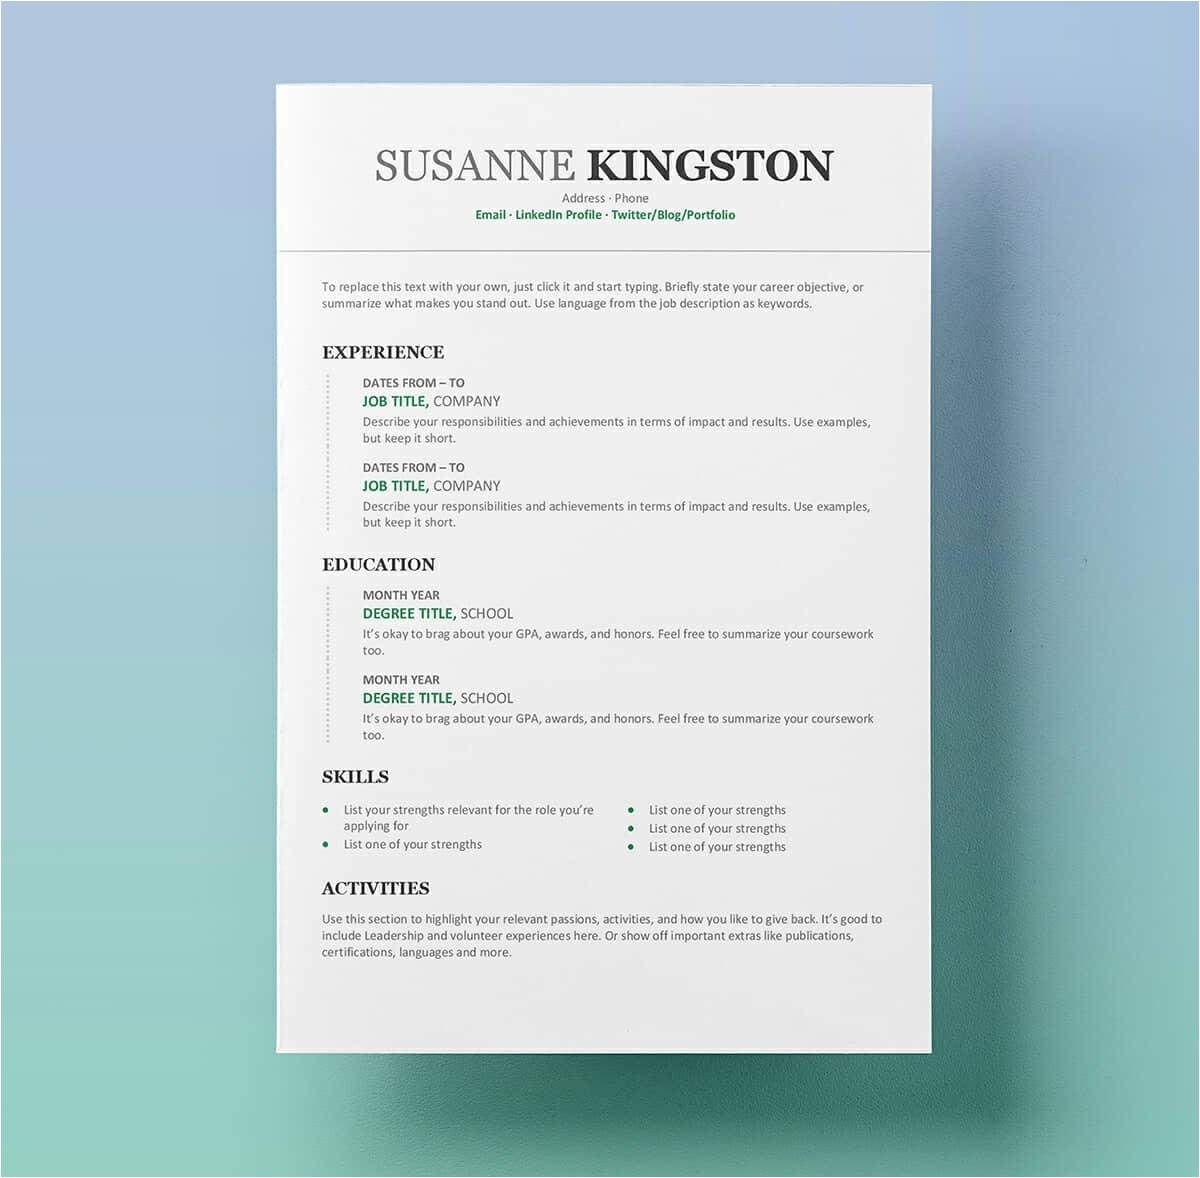 Free Word Resume Template Resume Templates for Word Free 15 Examples for Download